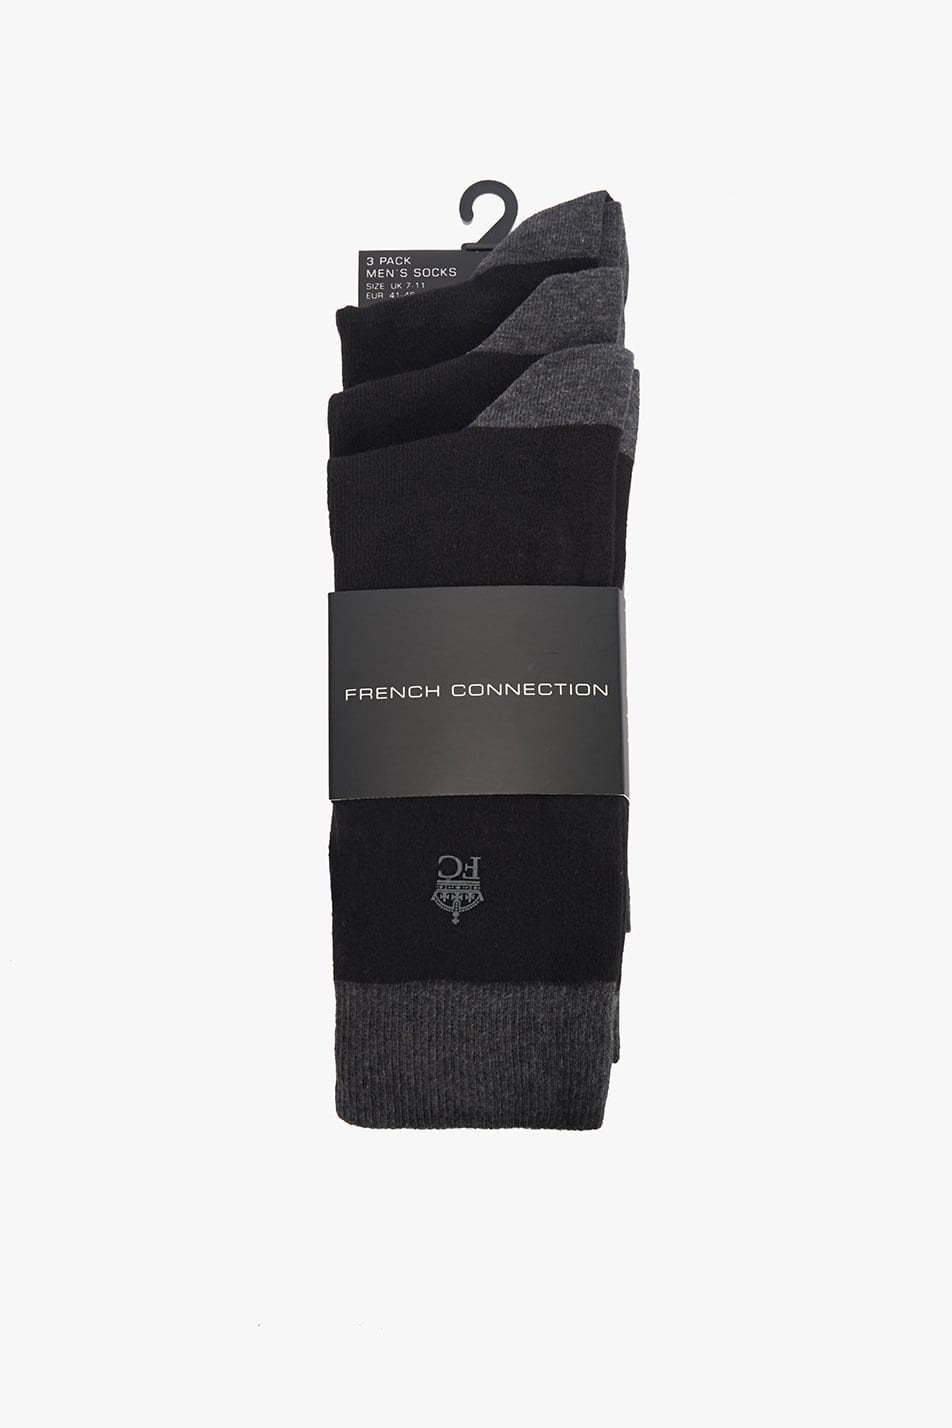 French Connection Heel & Toe Socks